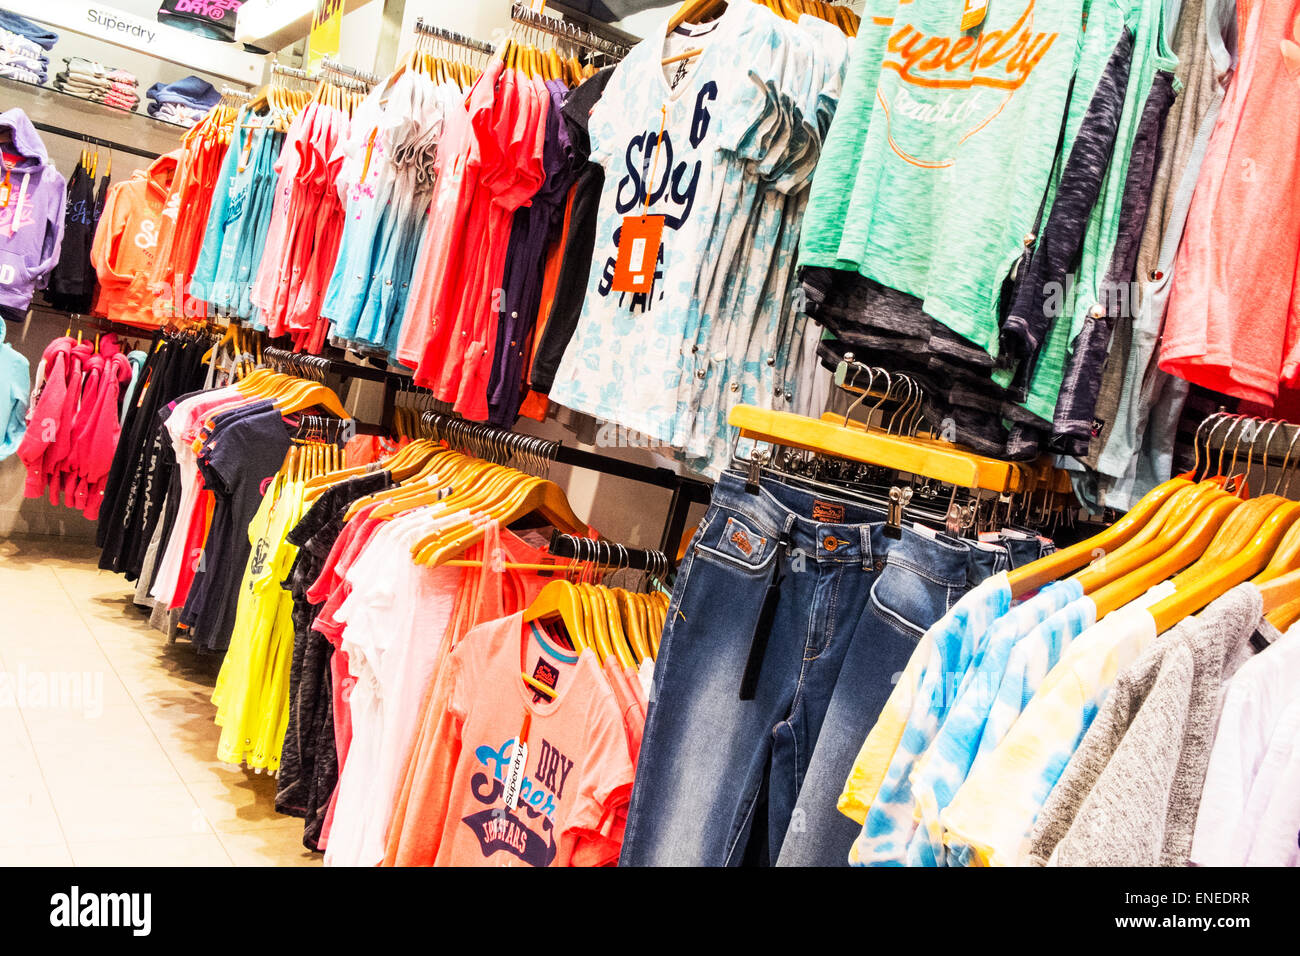 0752ebf19 Superdry clothes clothing inside shop store shopping ladies tops t's tshirts  Springfields Spalding town Lincolnshire UK England